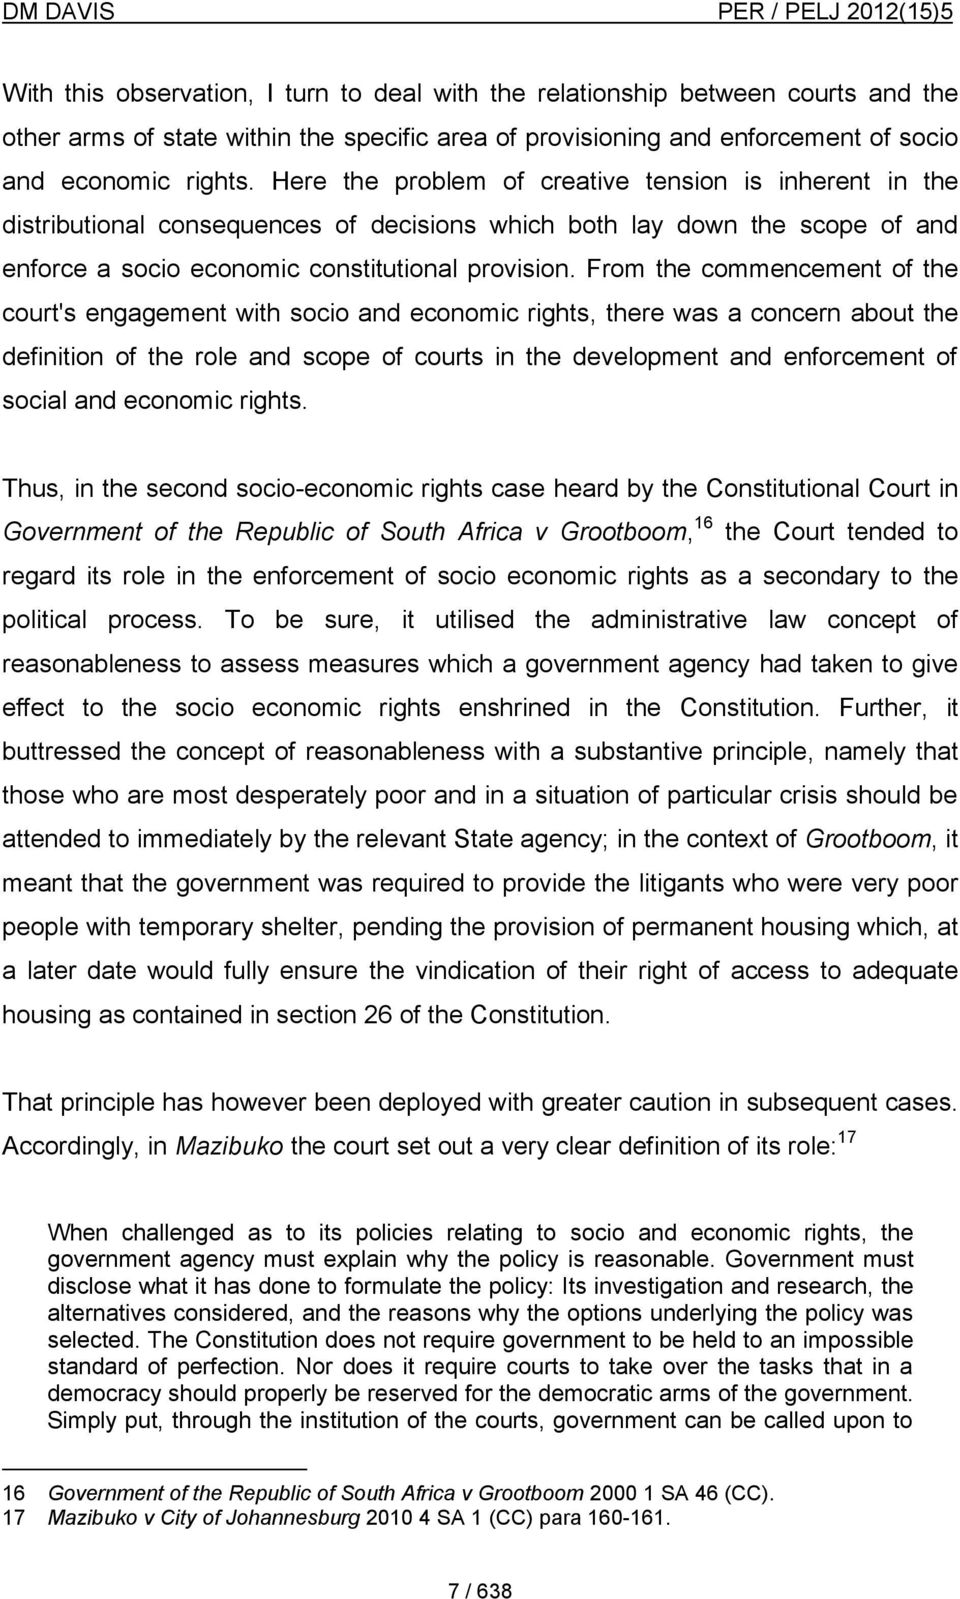 From the commencement of the court's engagement with socio and economic rights, there was a concern about the definition of the role and scope of courts in the development and enforcement of social